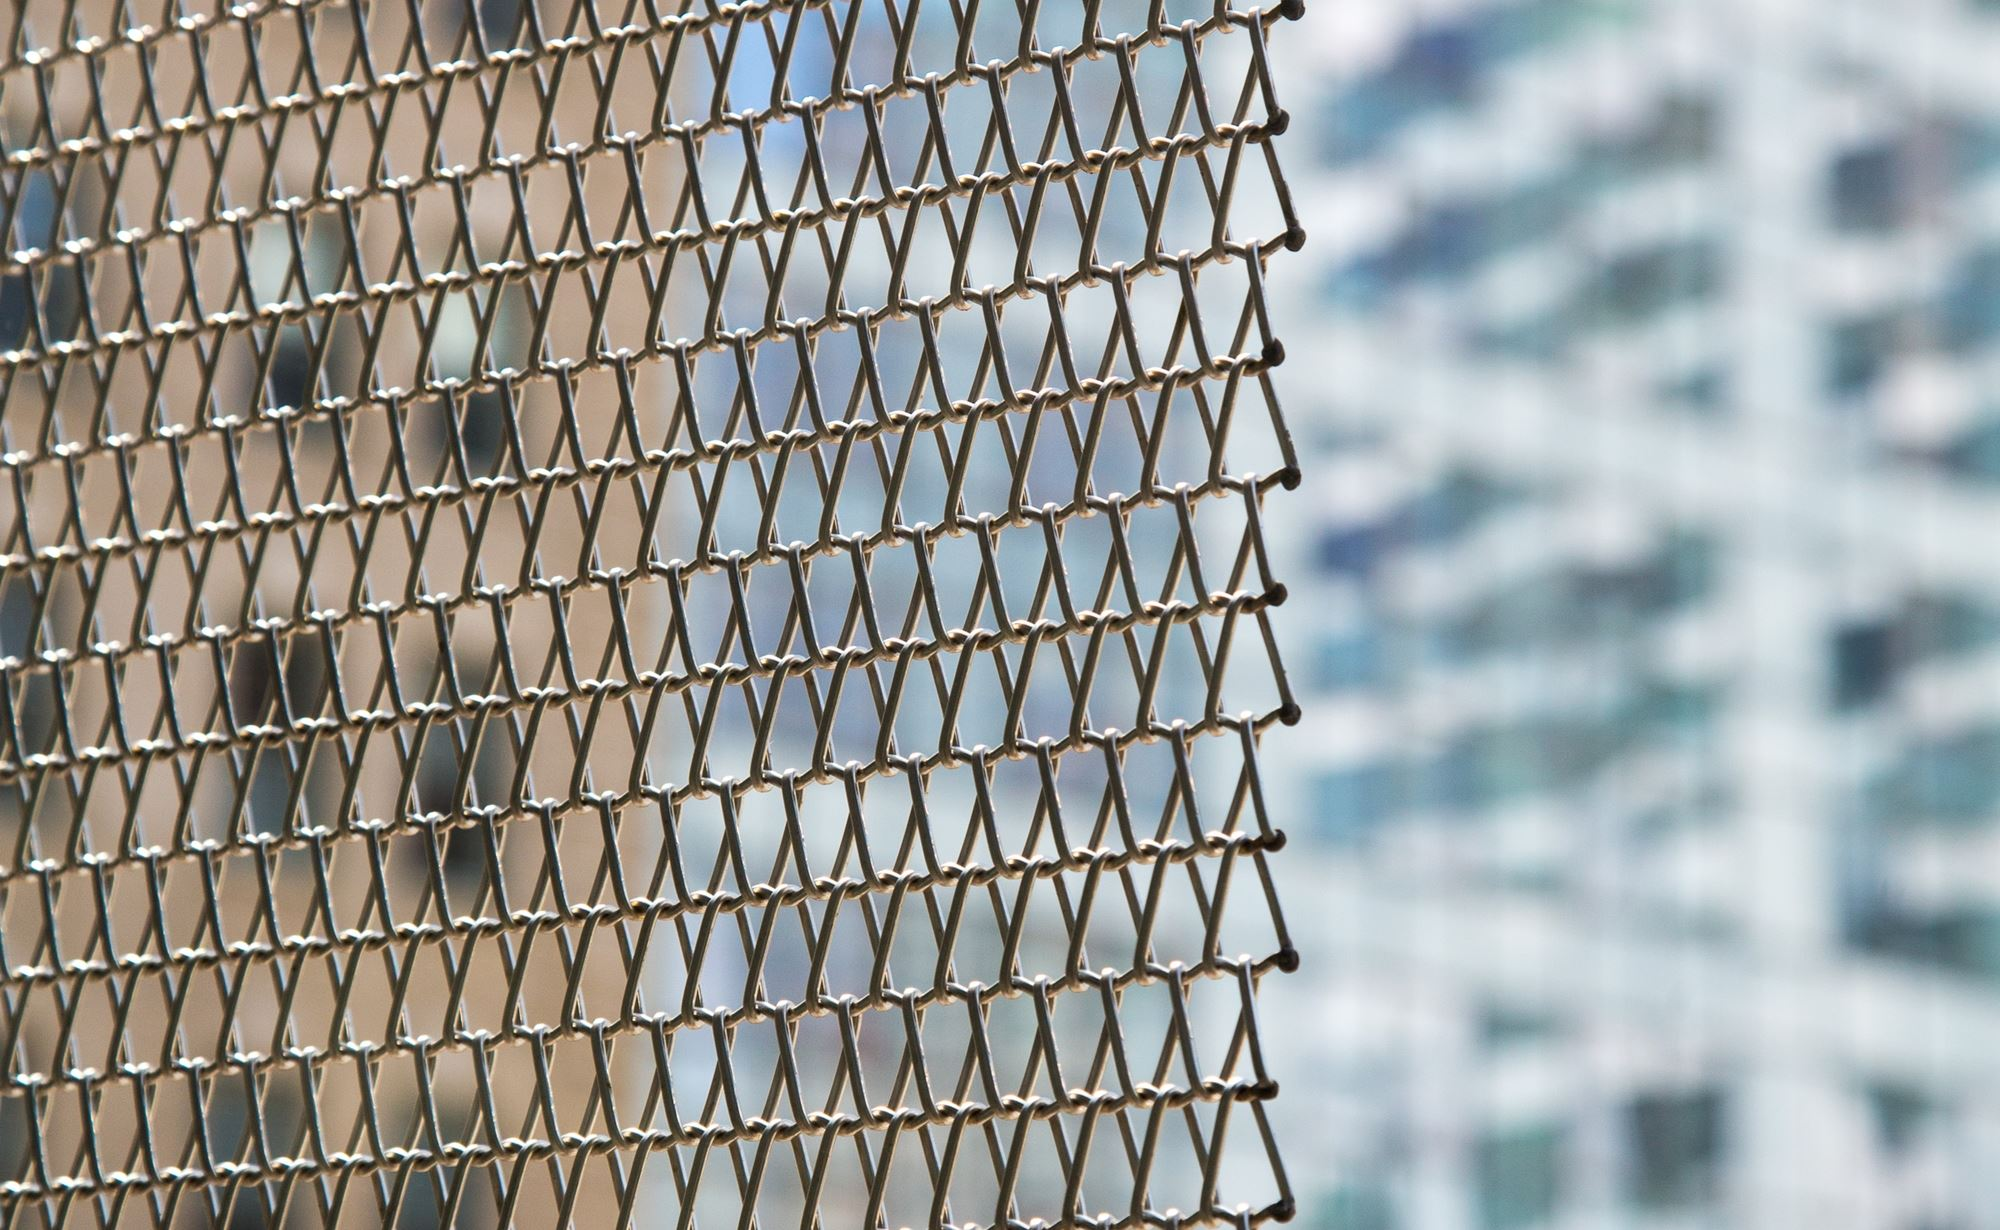 Courtyard by Marriott World Trade Center and Cambridge Architectural Mesh